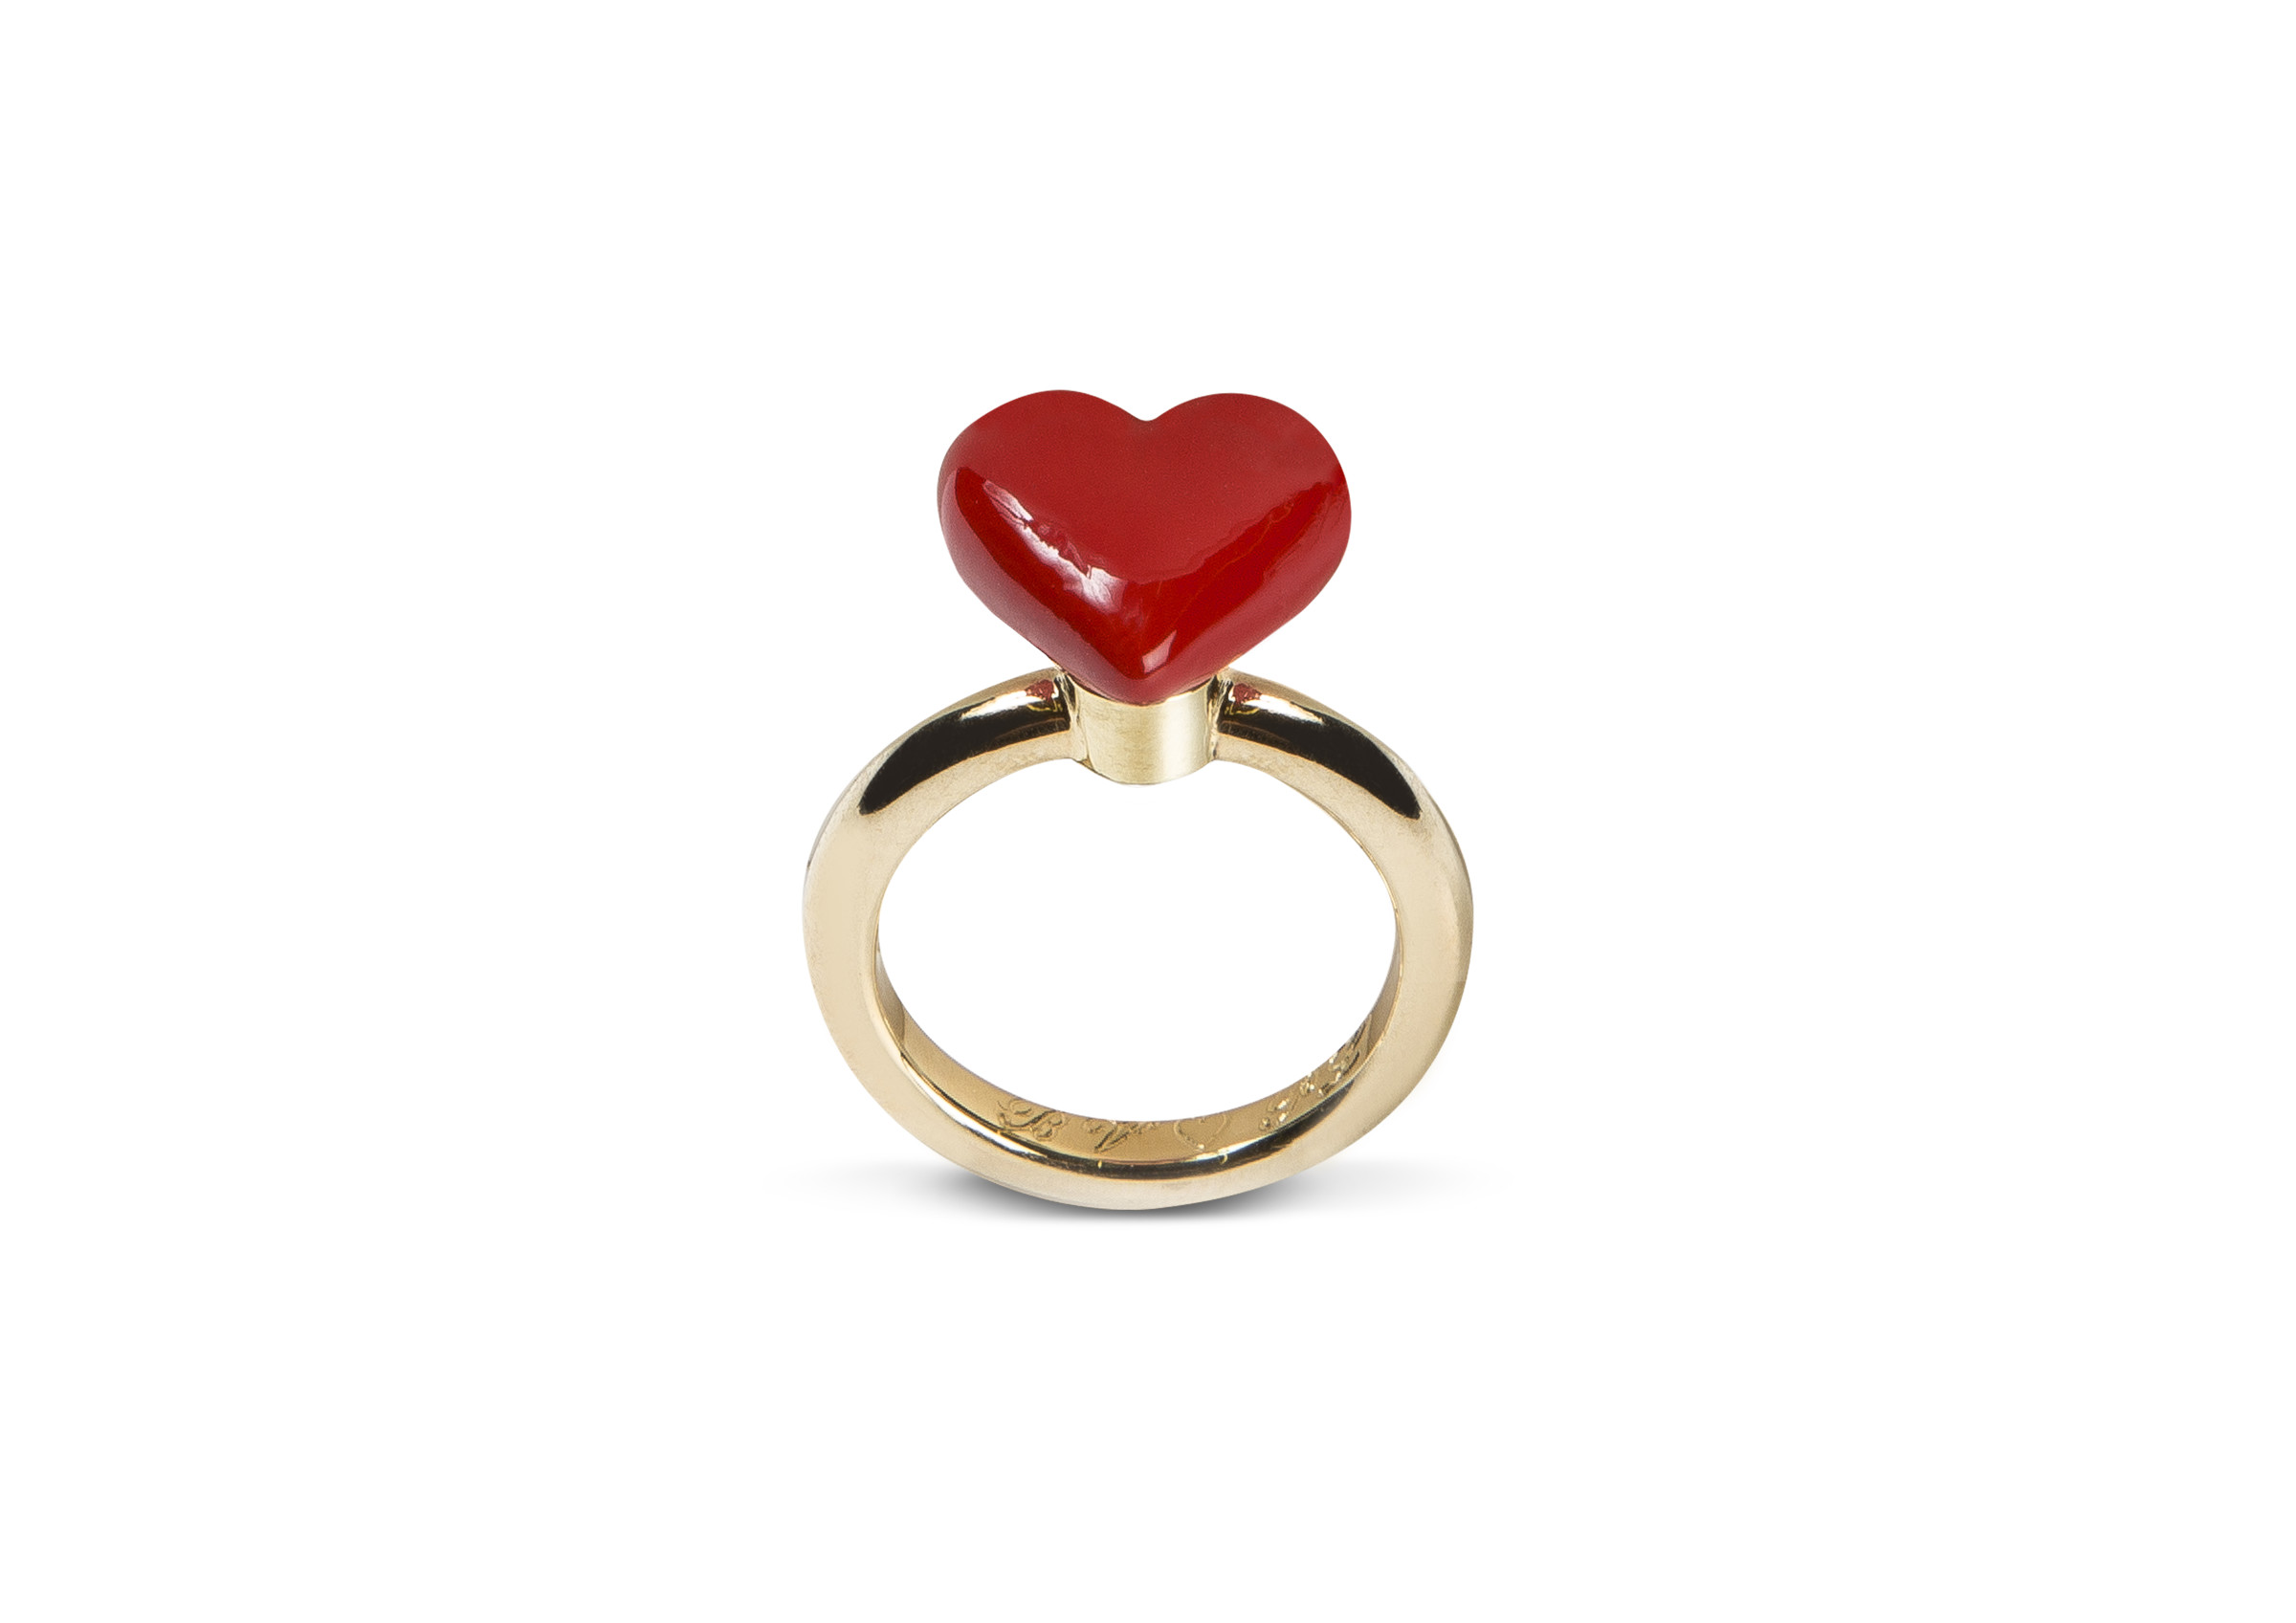 <span class=&#34;link fancybox-details-link&#34;><a href=&#34;/content/viewing-room/22/artworks5207/&#34;>View Detail Page</a></span><div class=&#34;artist&#34;><strong>Studio Job</strong></div><div class=&#34;title&#34;><em>Heart Ring</em>, 2019</div><div class=&#34;medium&#34;>Ring: 14 carat yellow gold<br>Heart: sterling silver, coating</div><div class=&#34;dimensions&#34;>The ring will be made at the requested size</div>